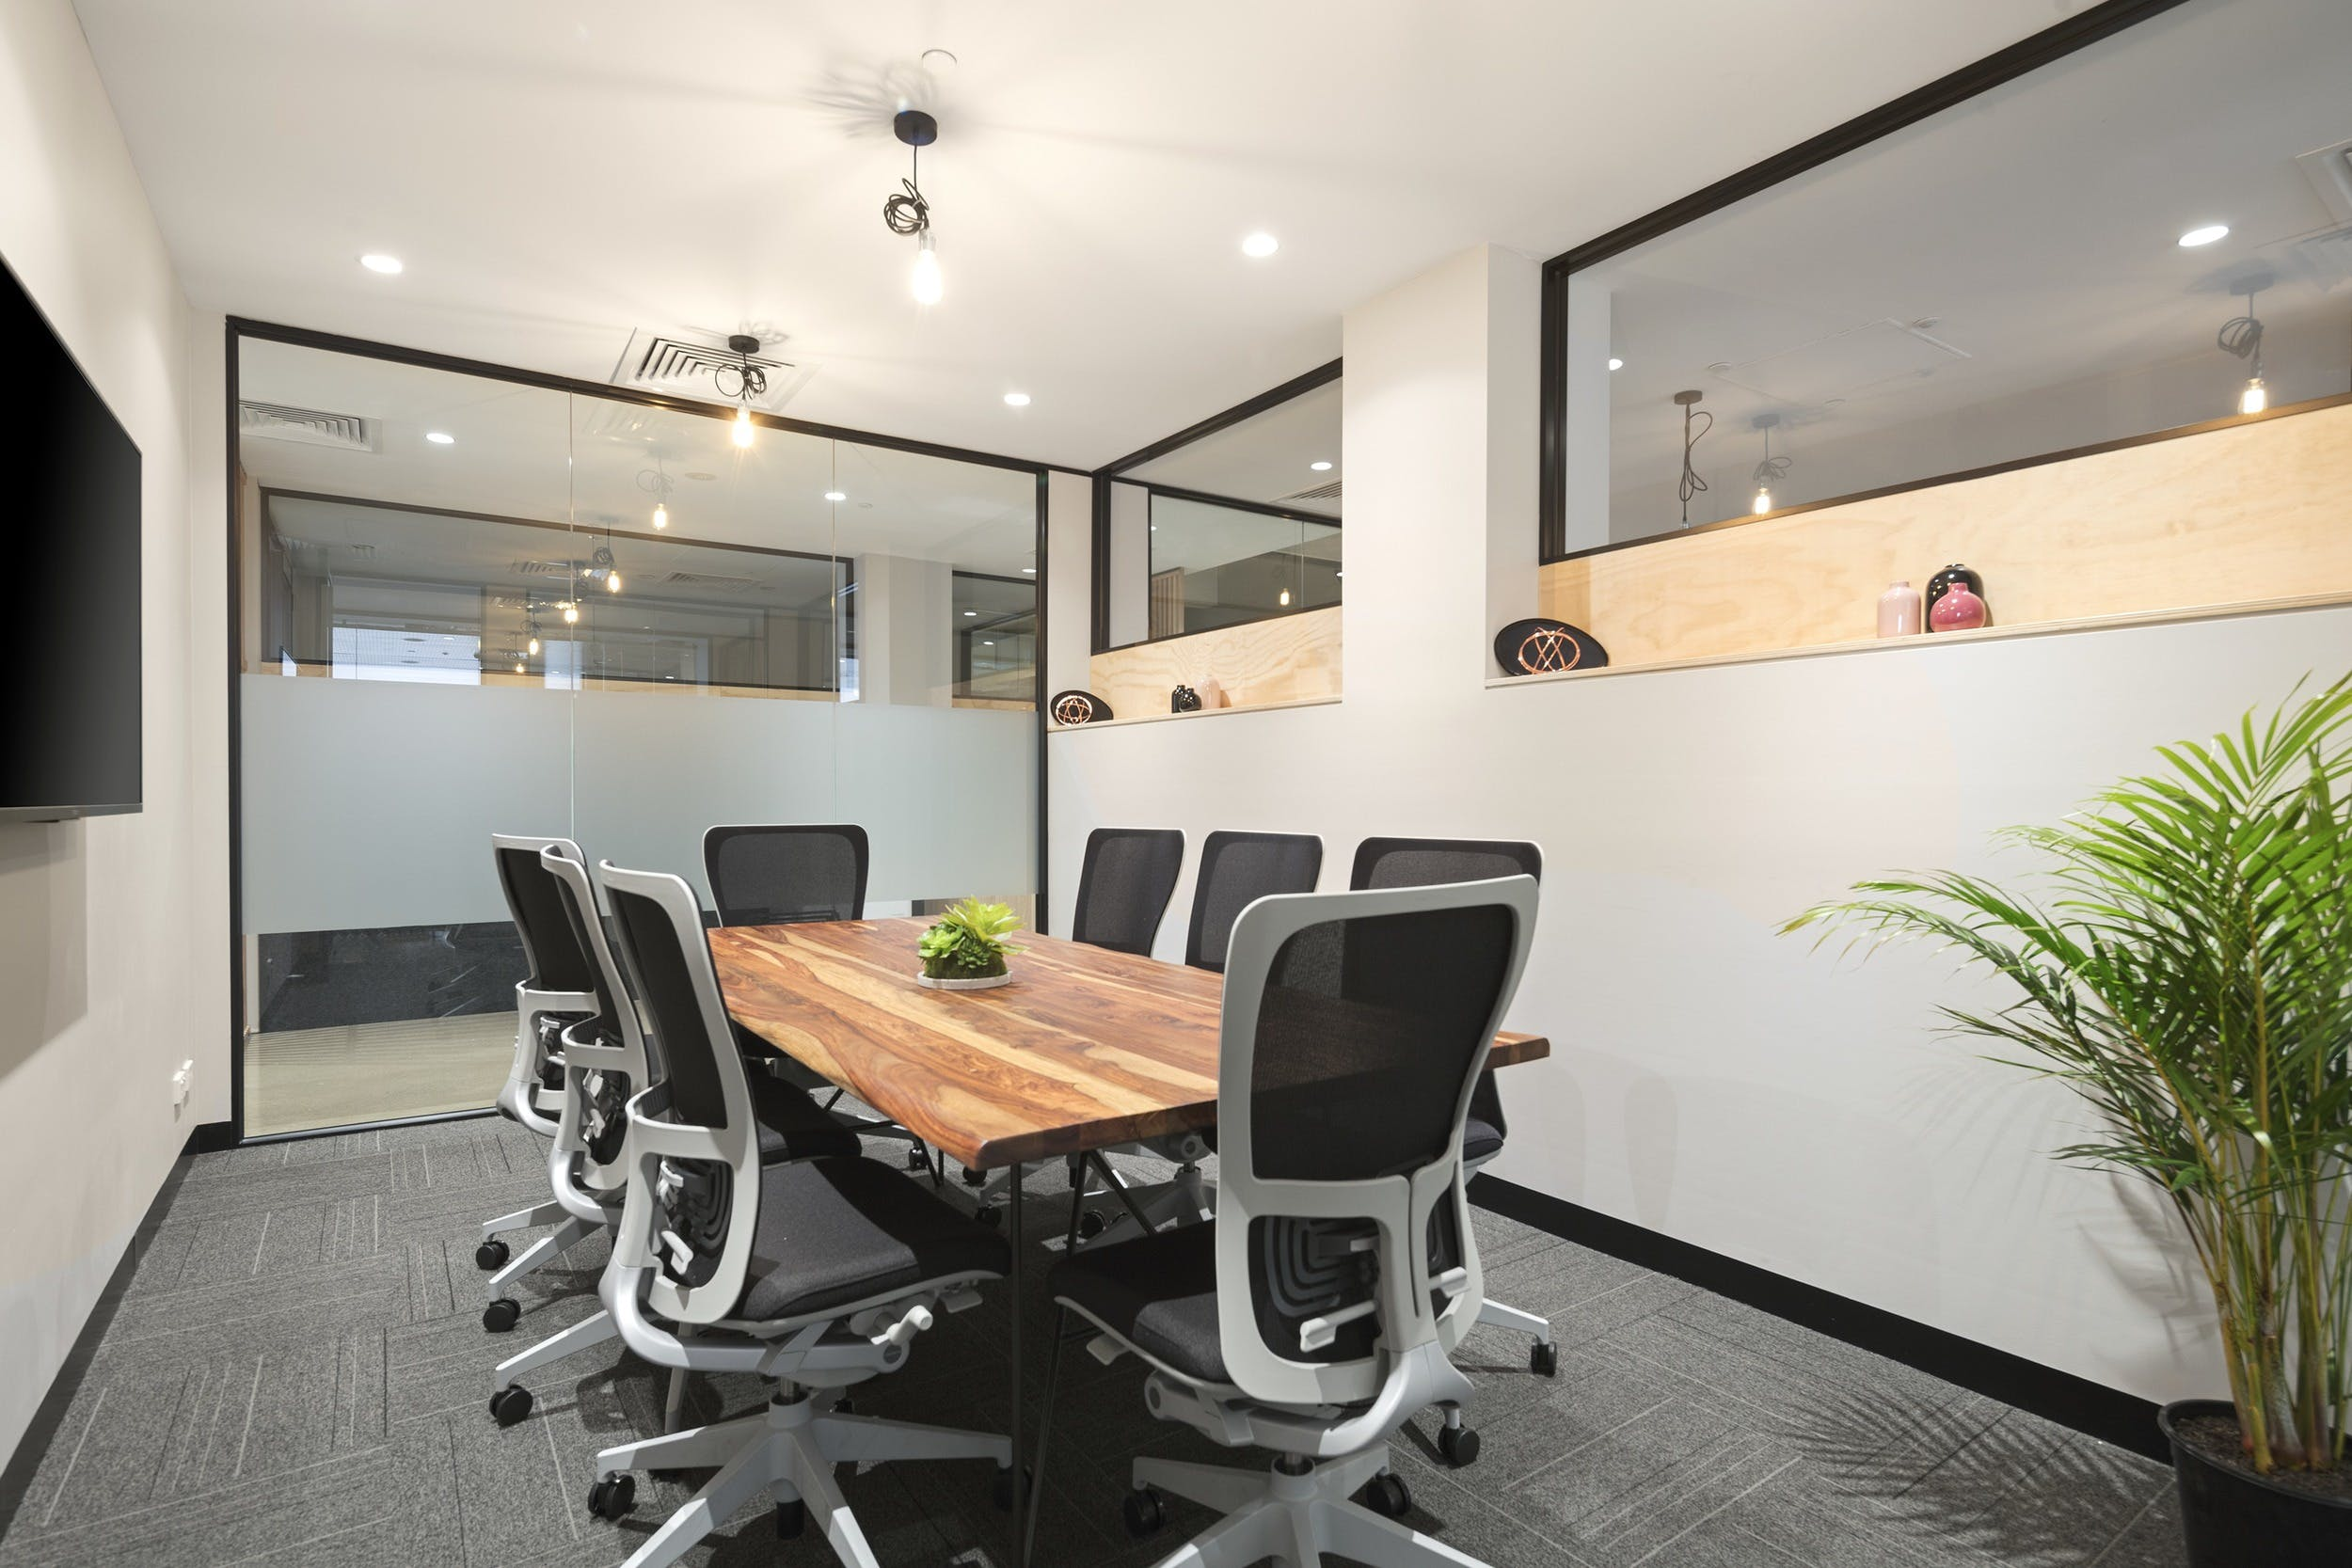 8 Person meeting space, meeting room at United Co., image 1